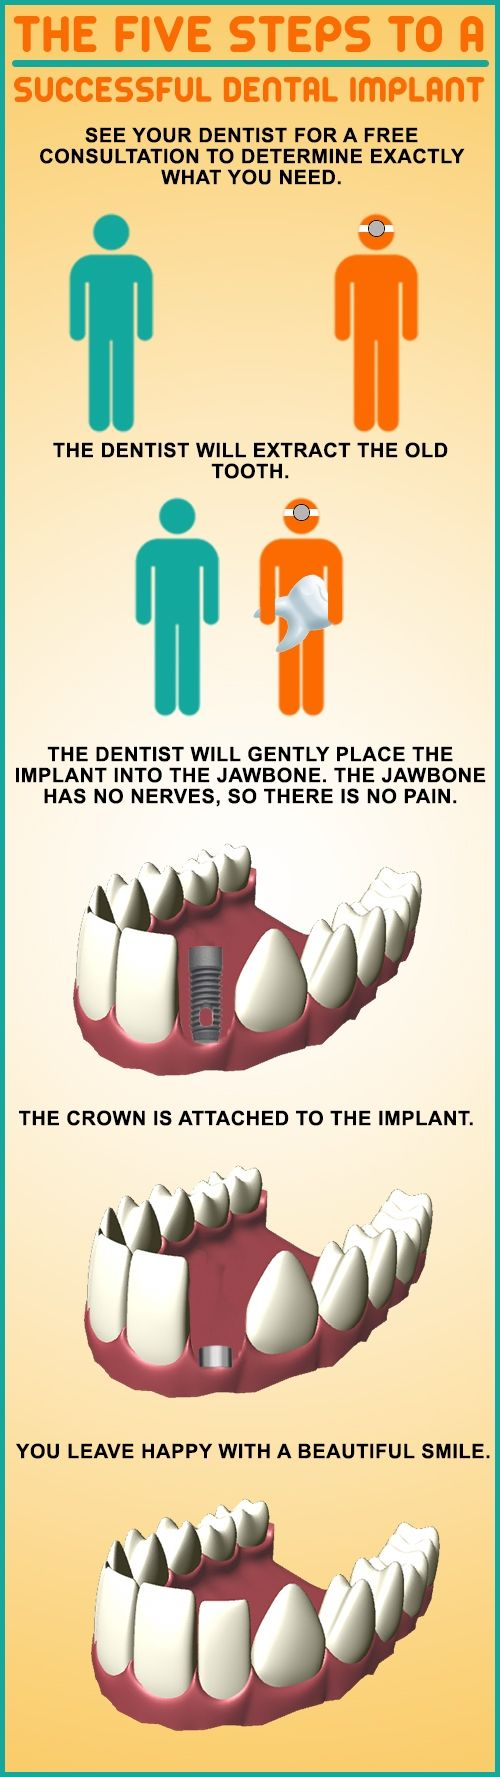 Five steps to successful implant